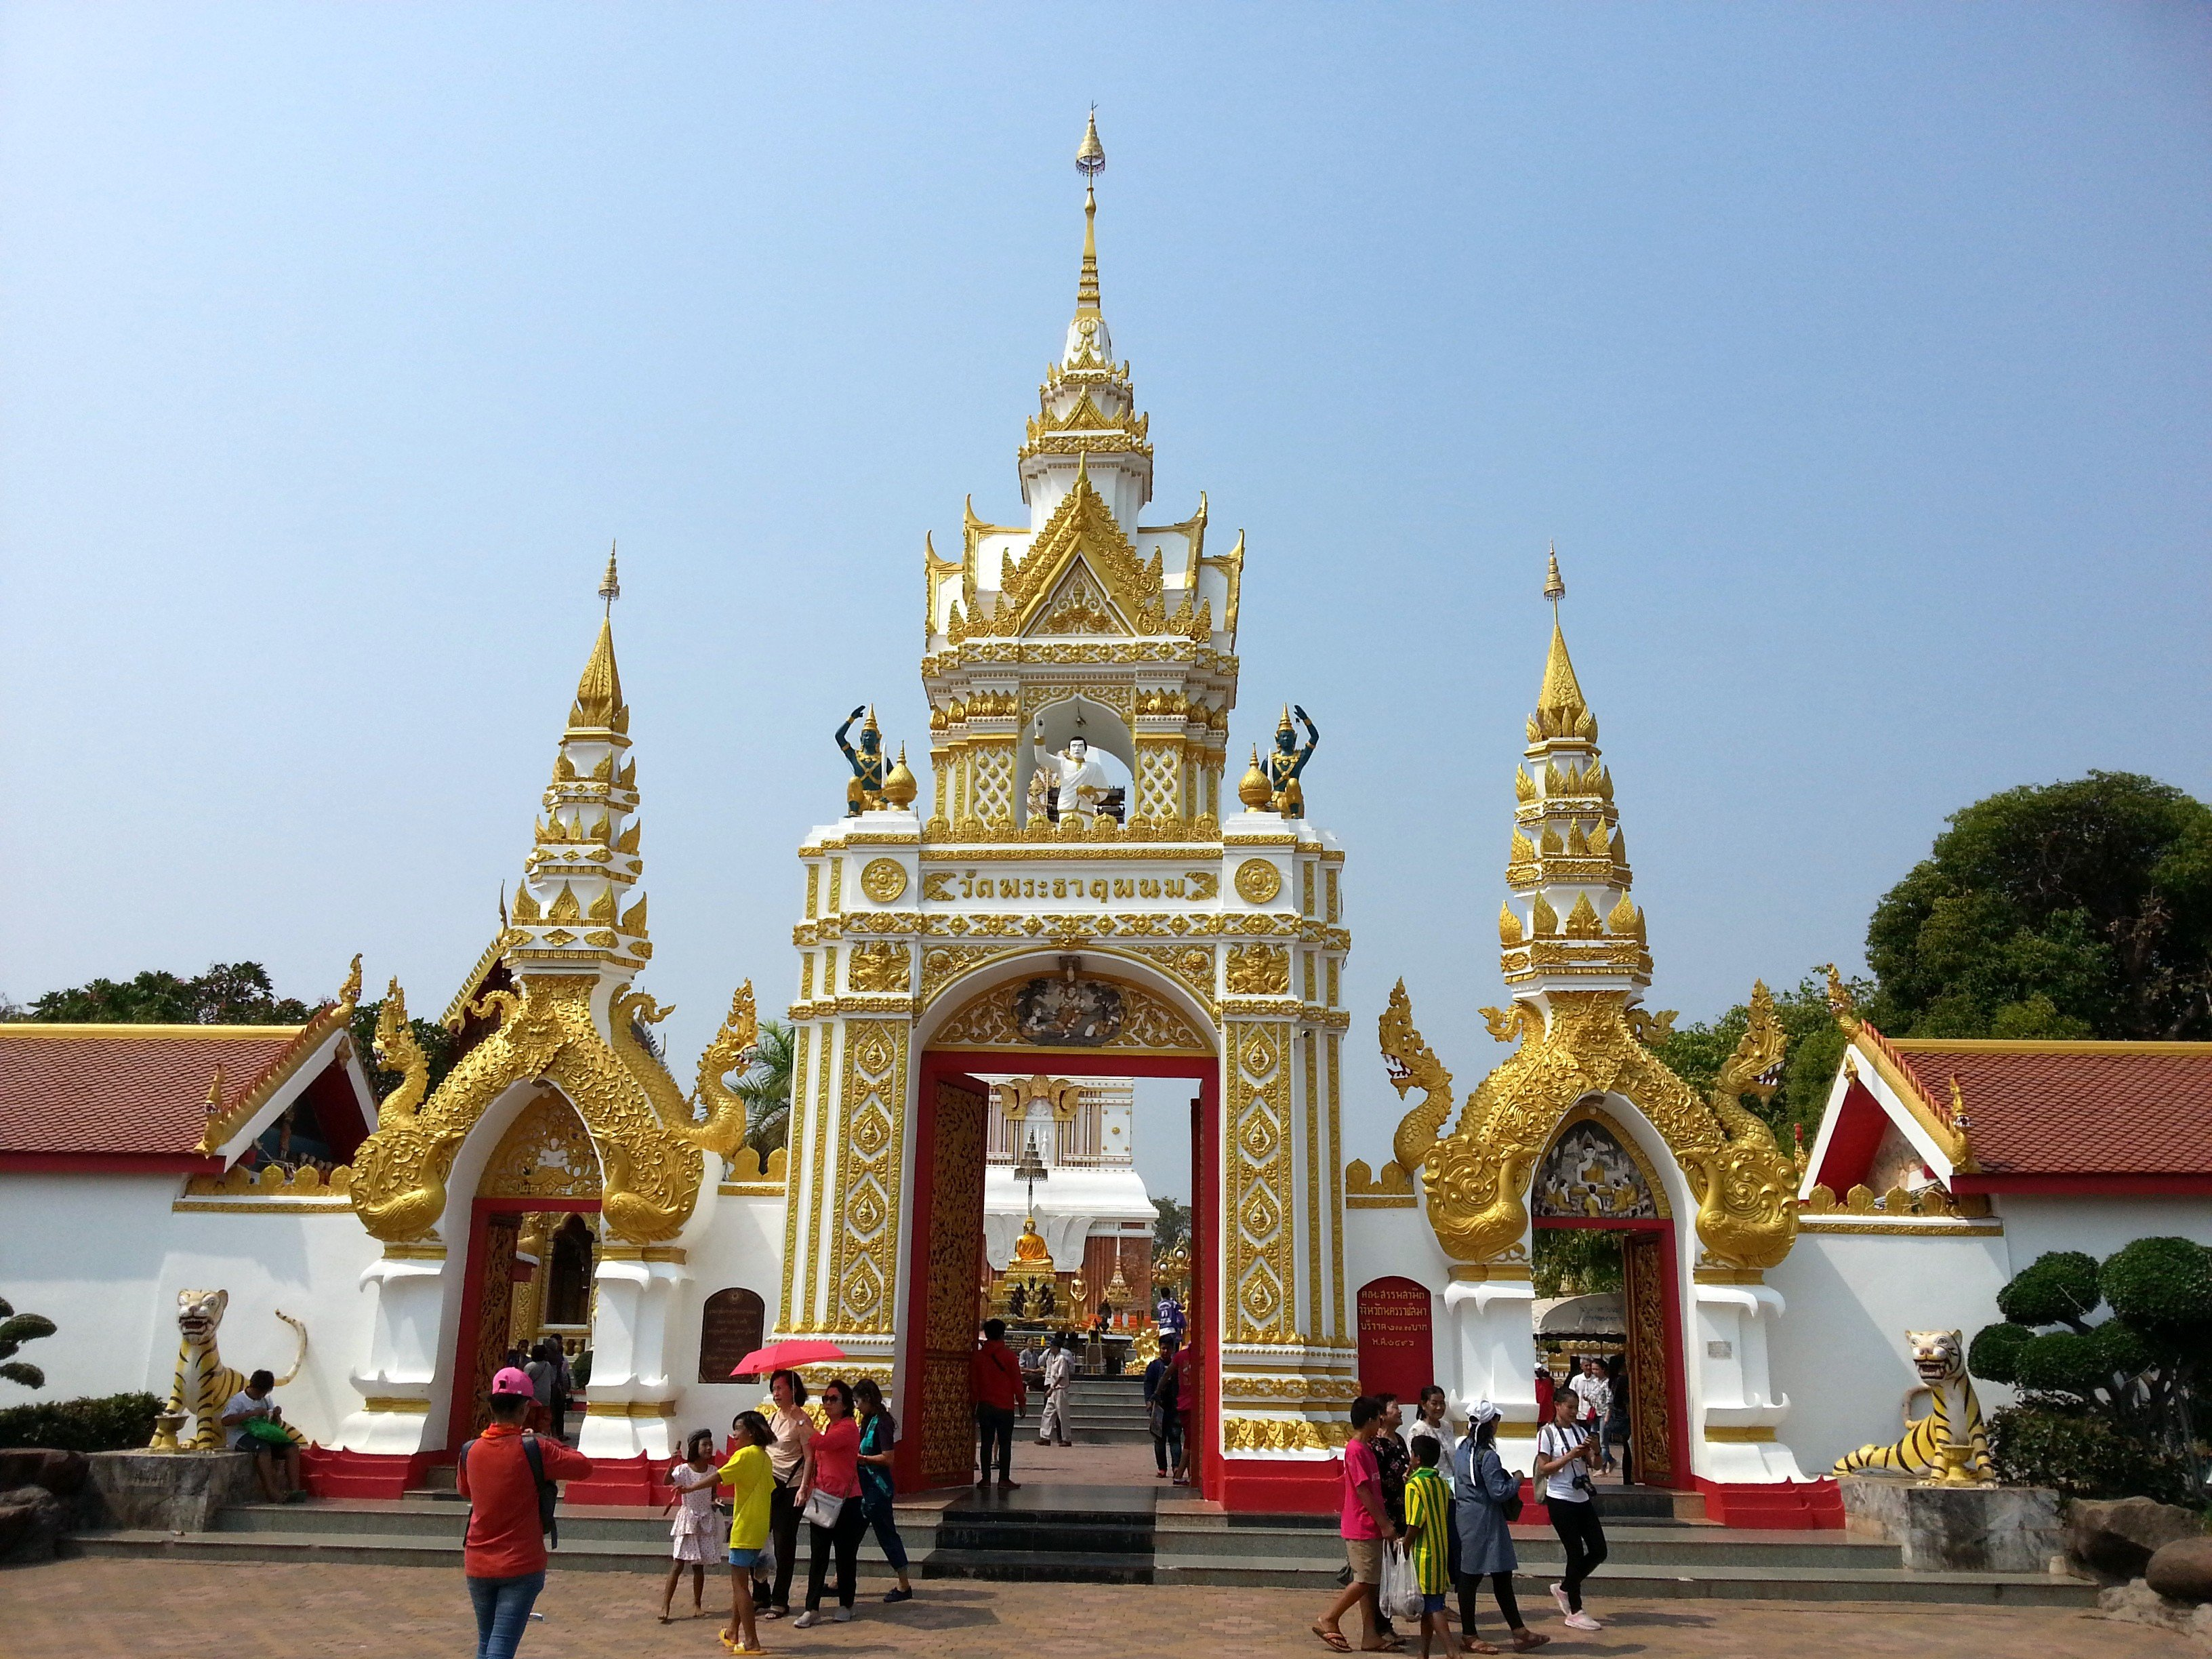 Main entrance to Wat Phra That Phanom